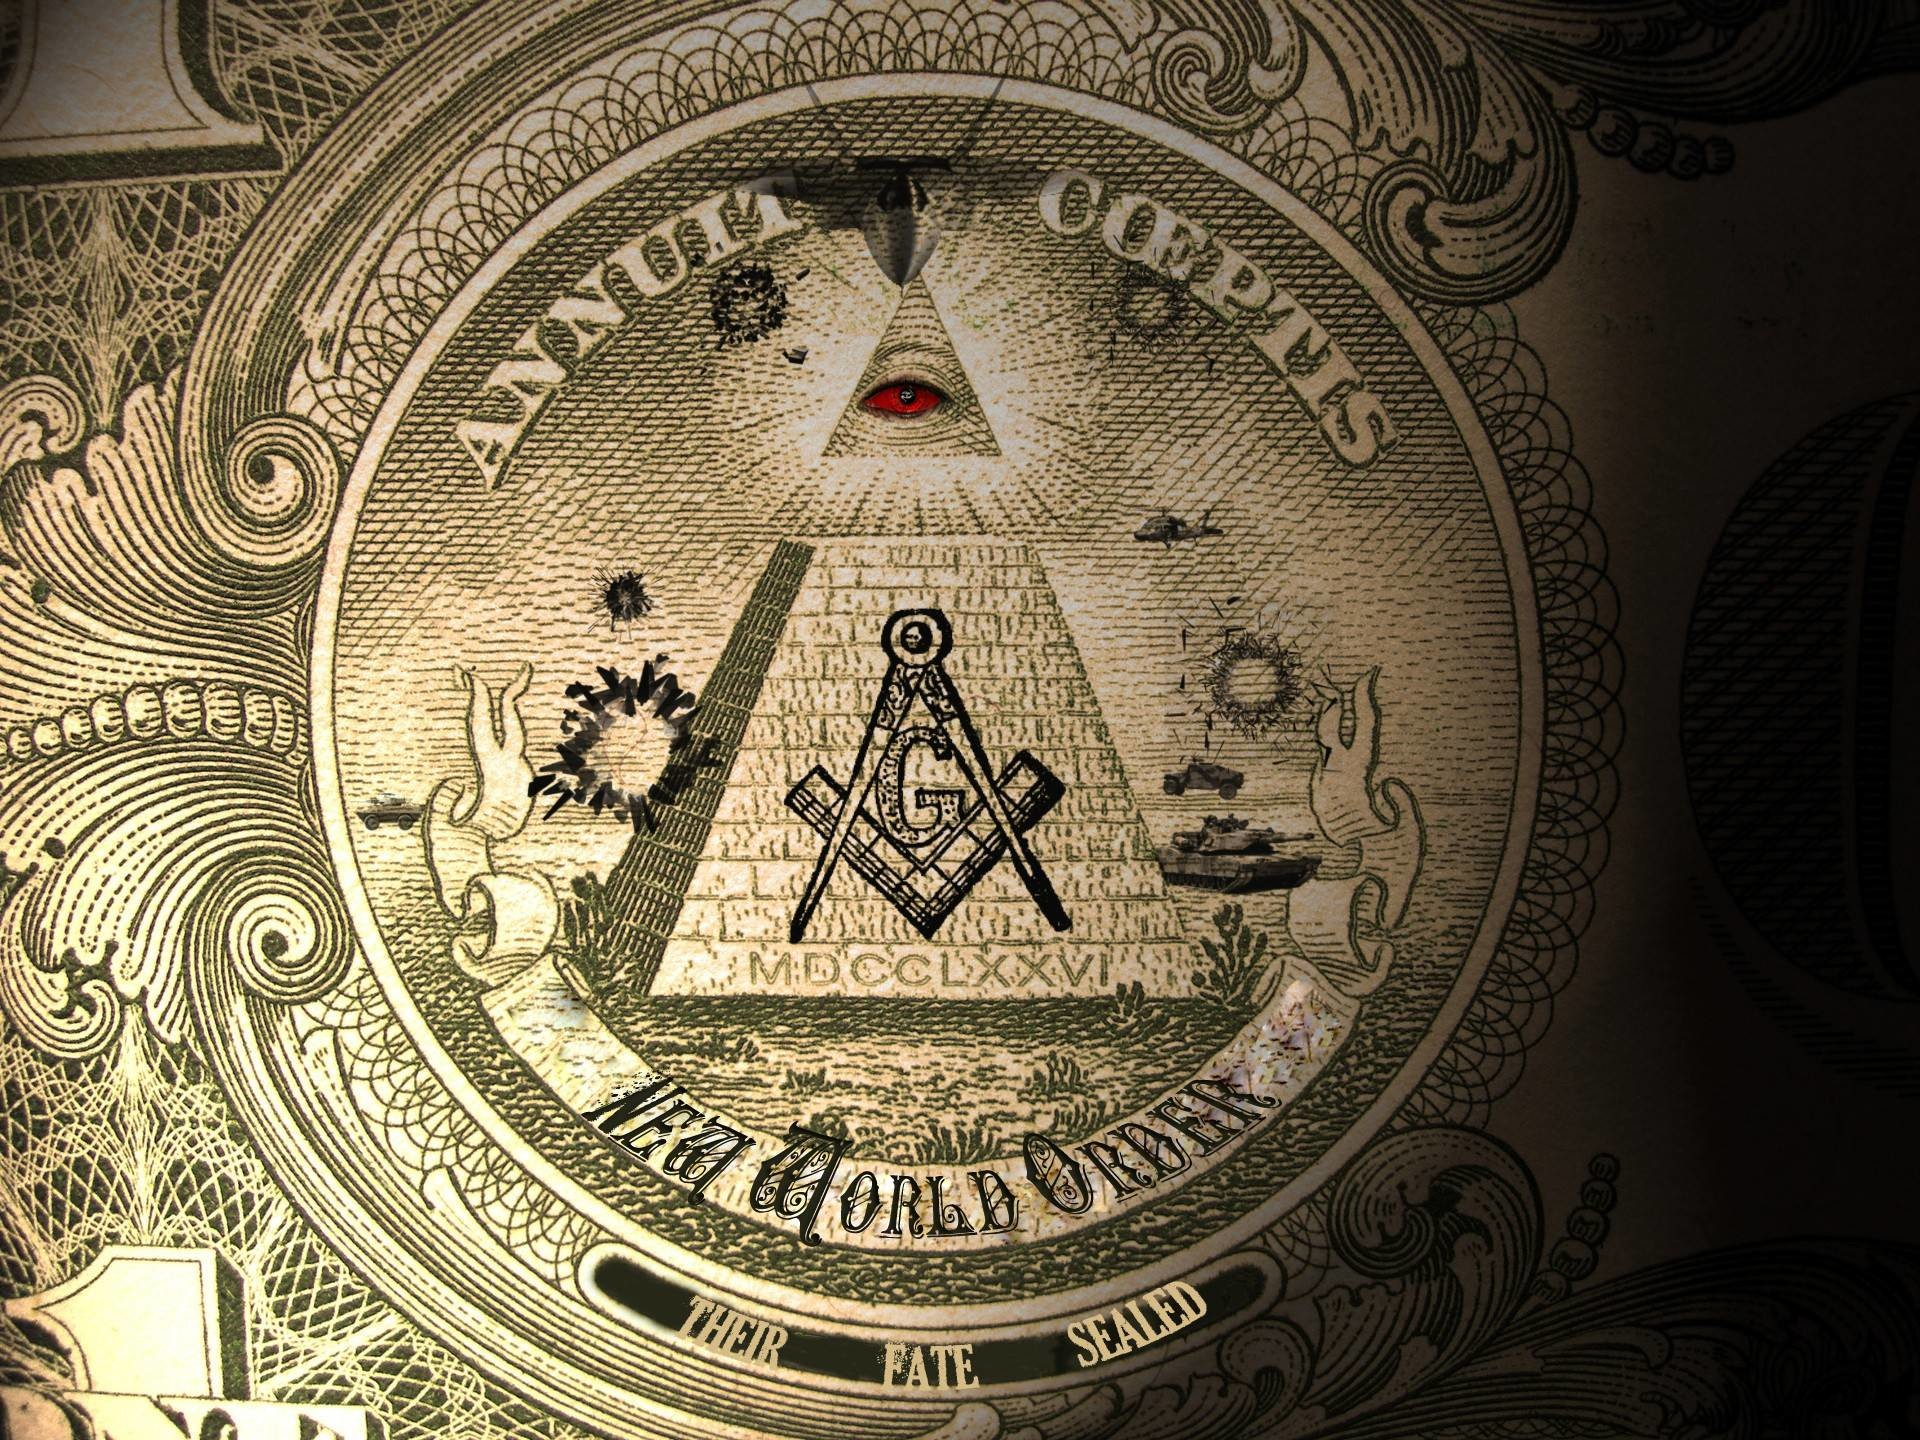 money illuminati hd wallpapers desktop wallpapers hd 4k high definition mac  apple colourful images backgrounds download